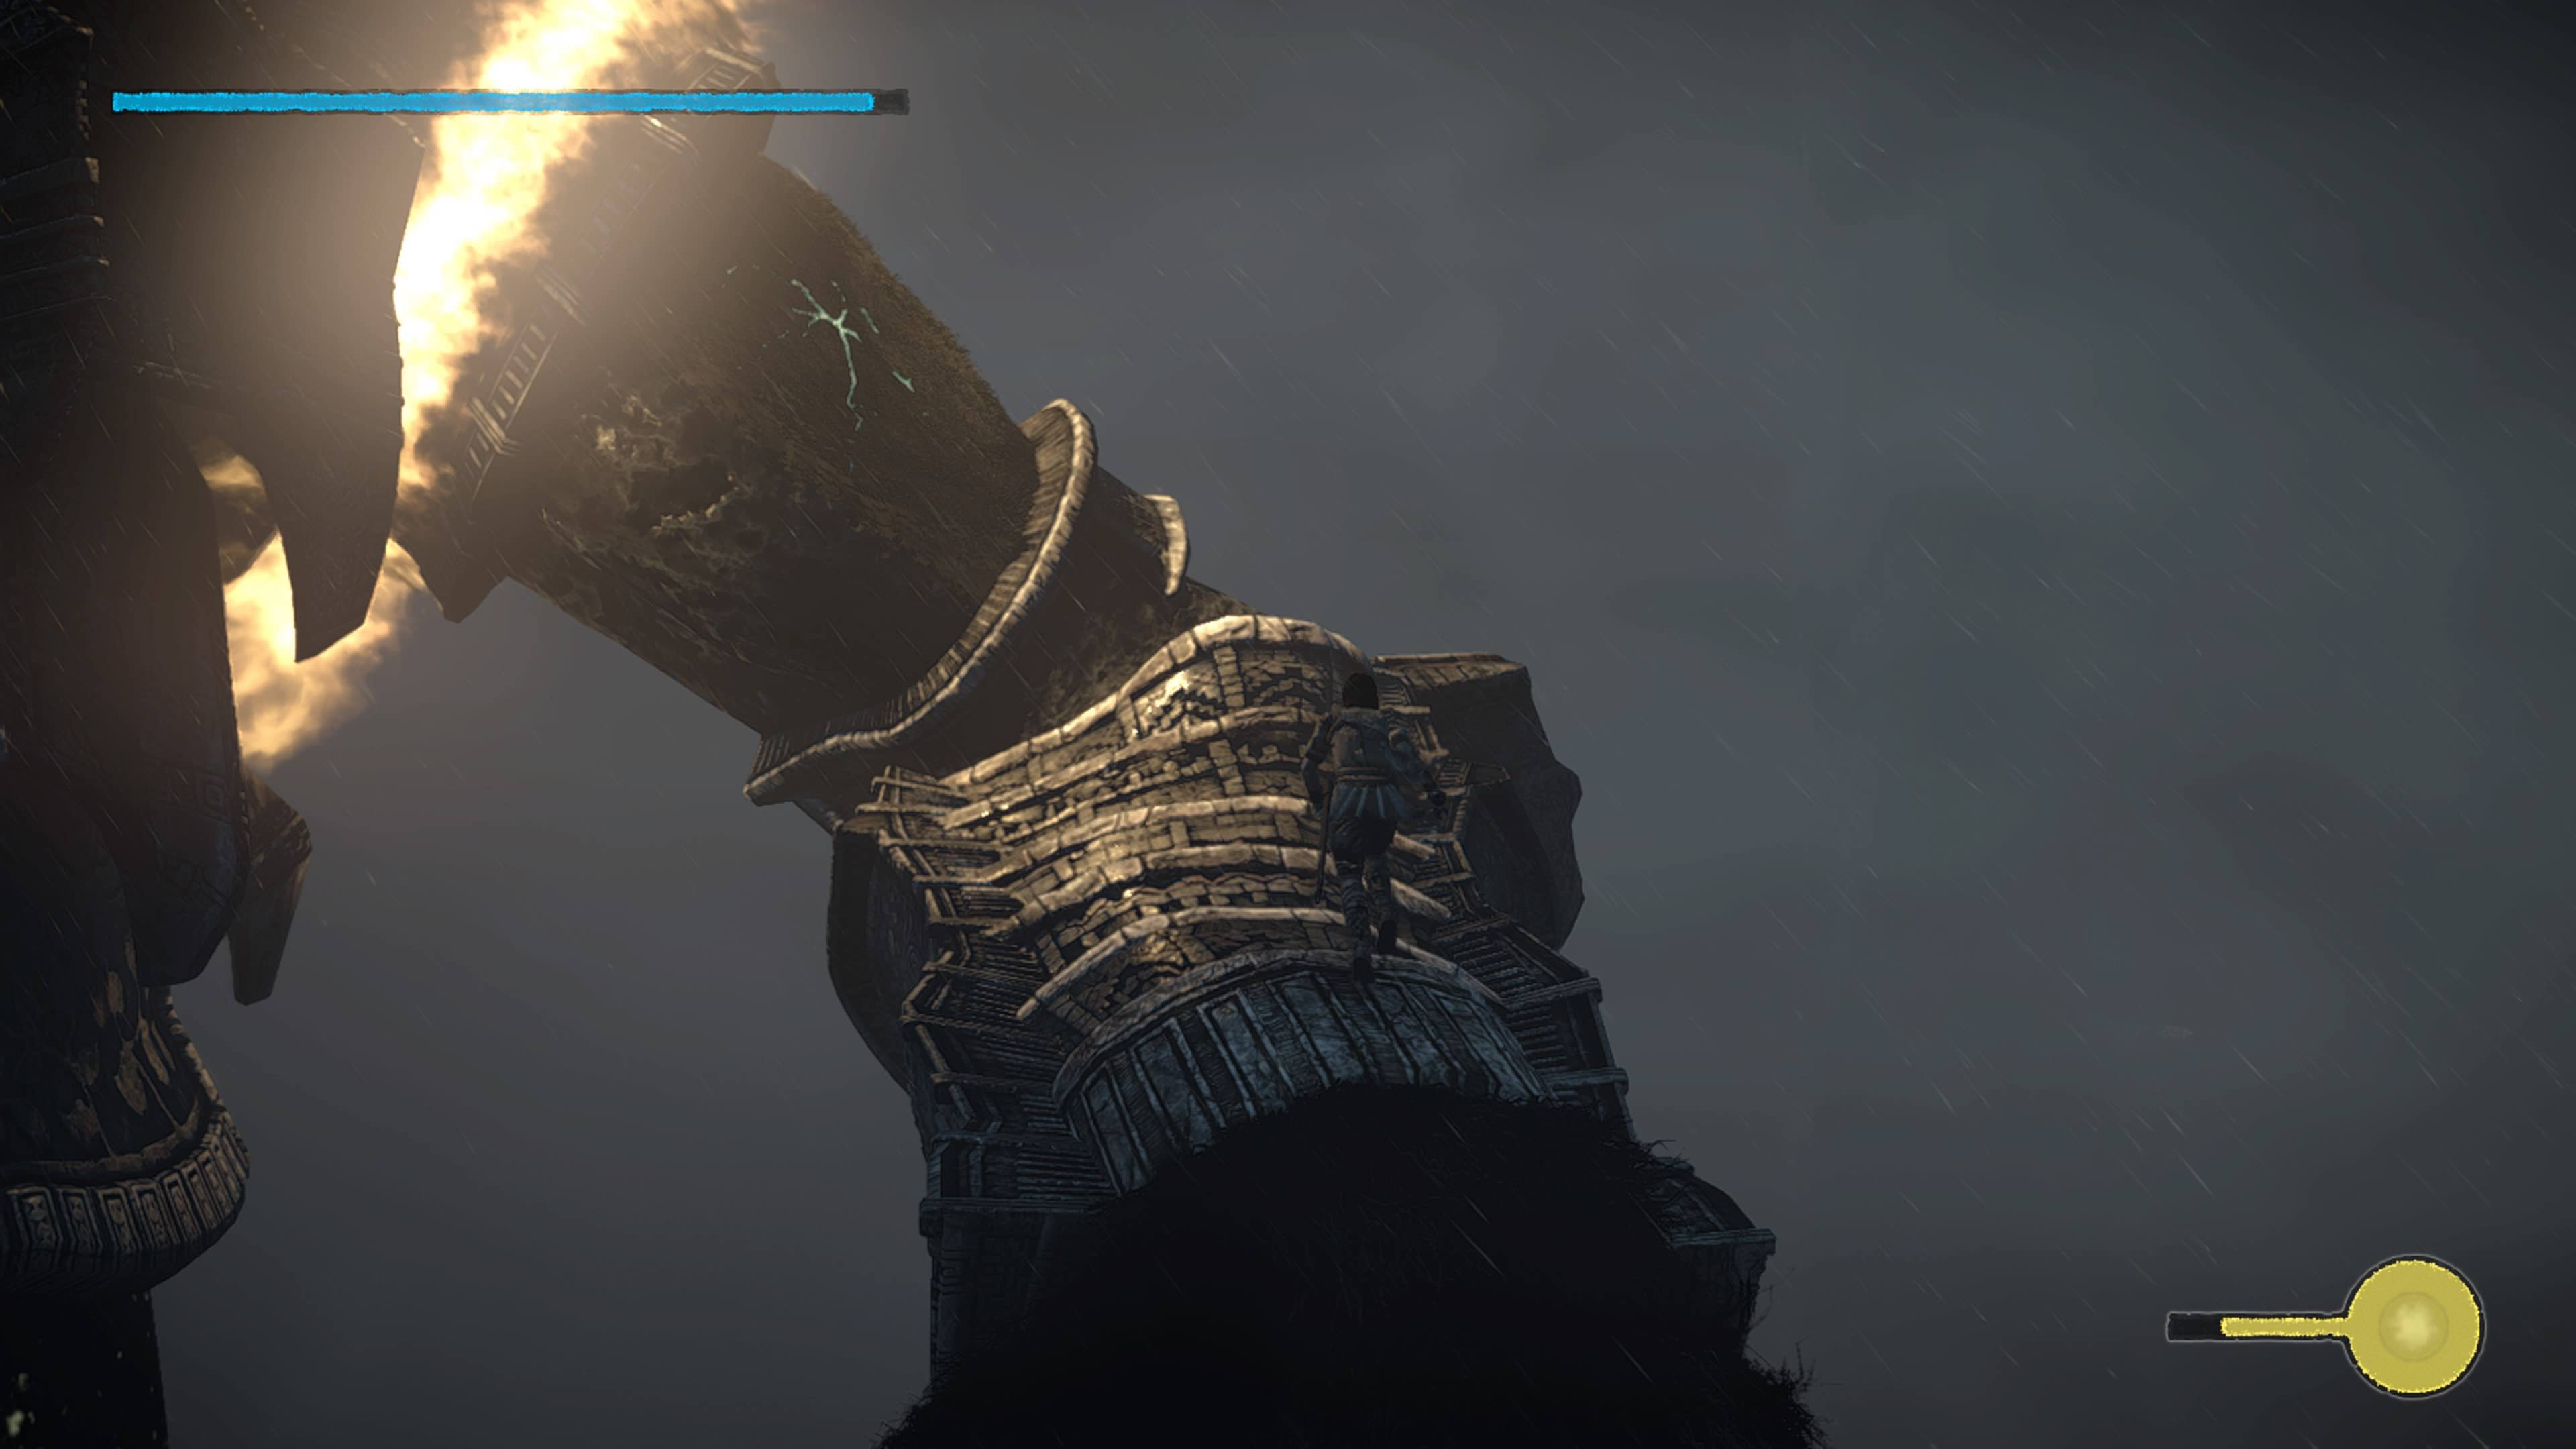 Shadow_of_the_Colossus_Coloso_16_8